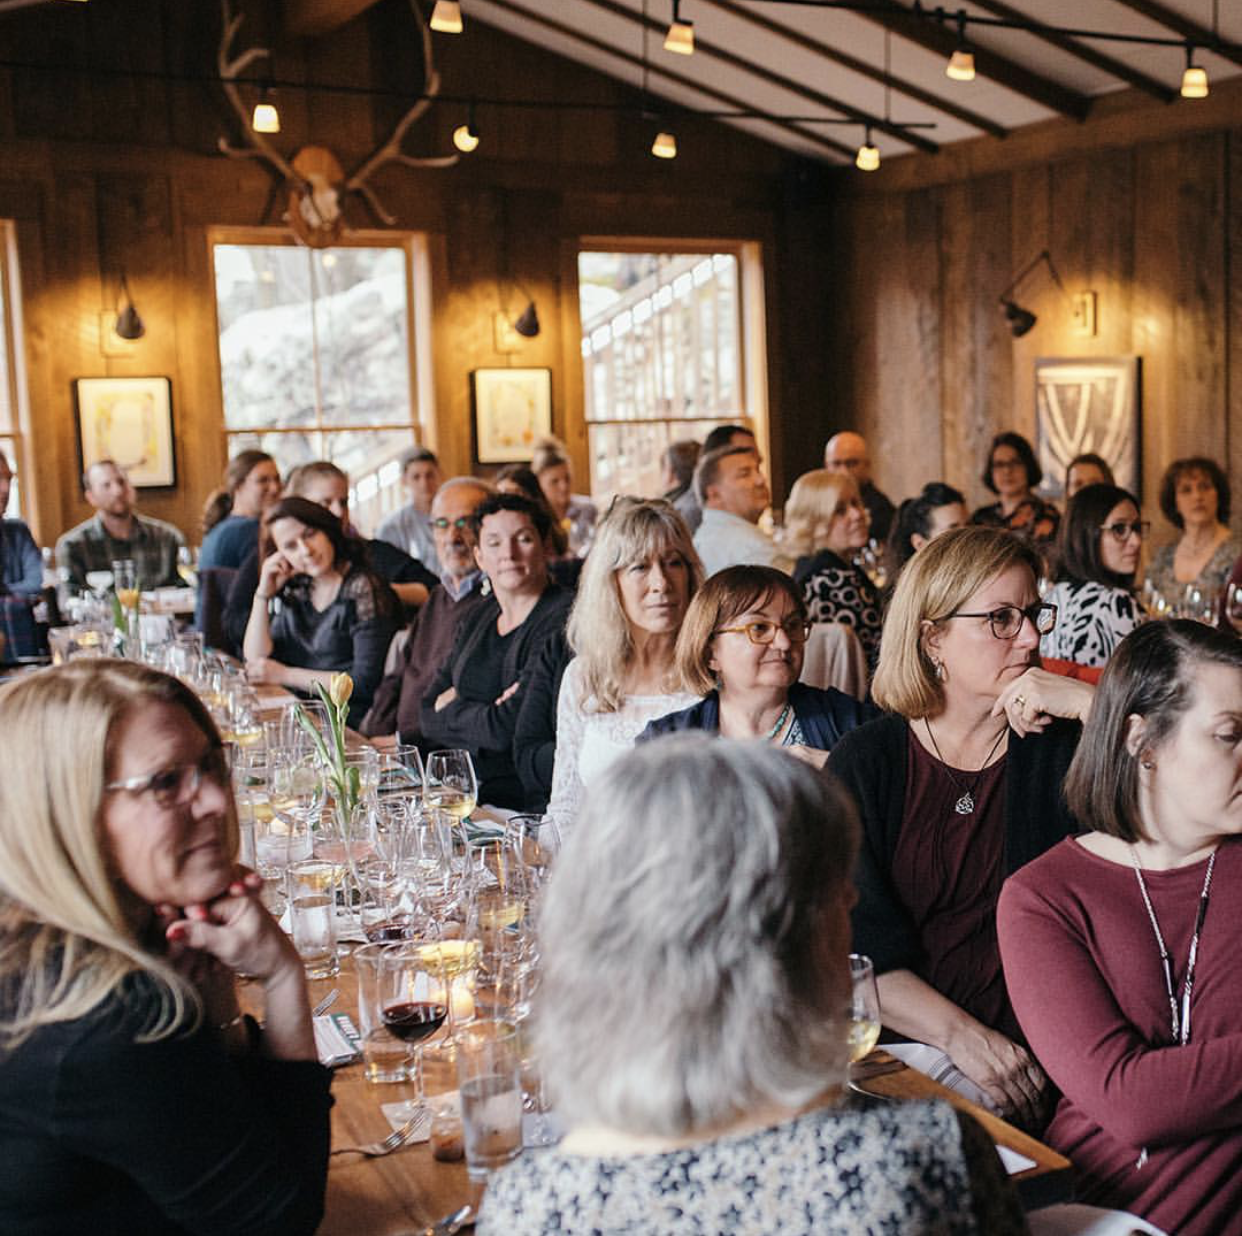 Women's Dinner at Oyster Club